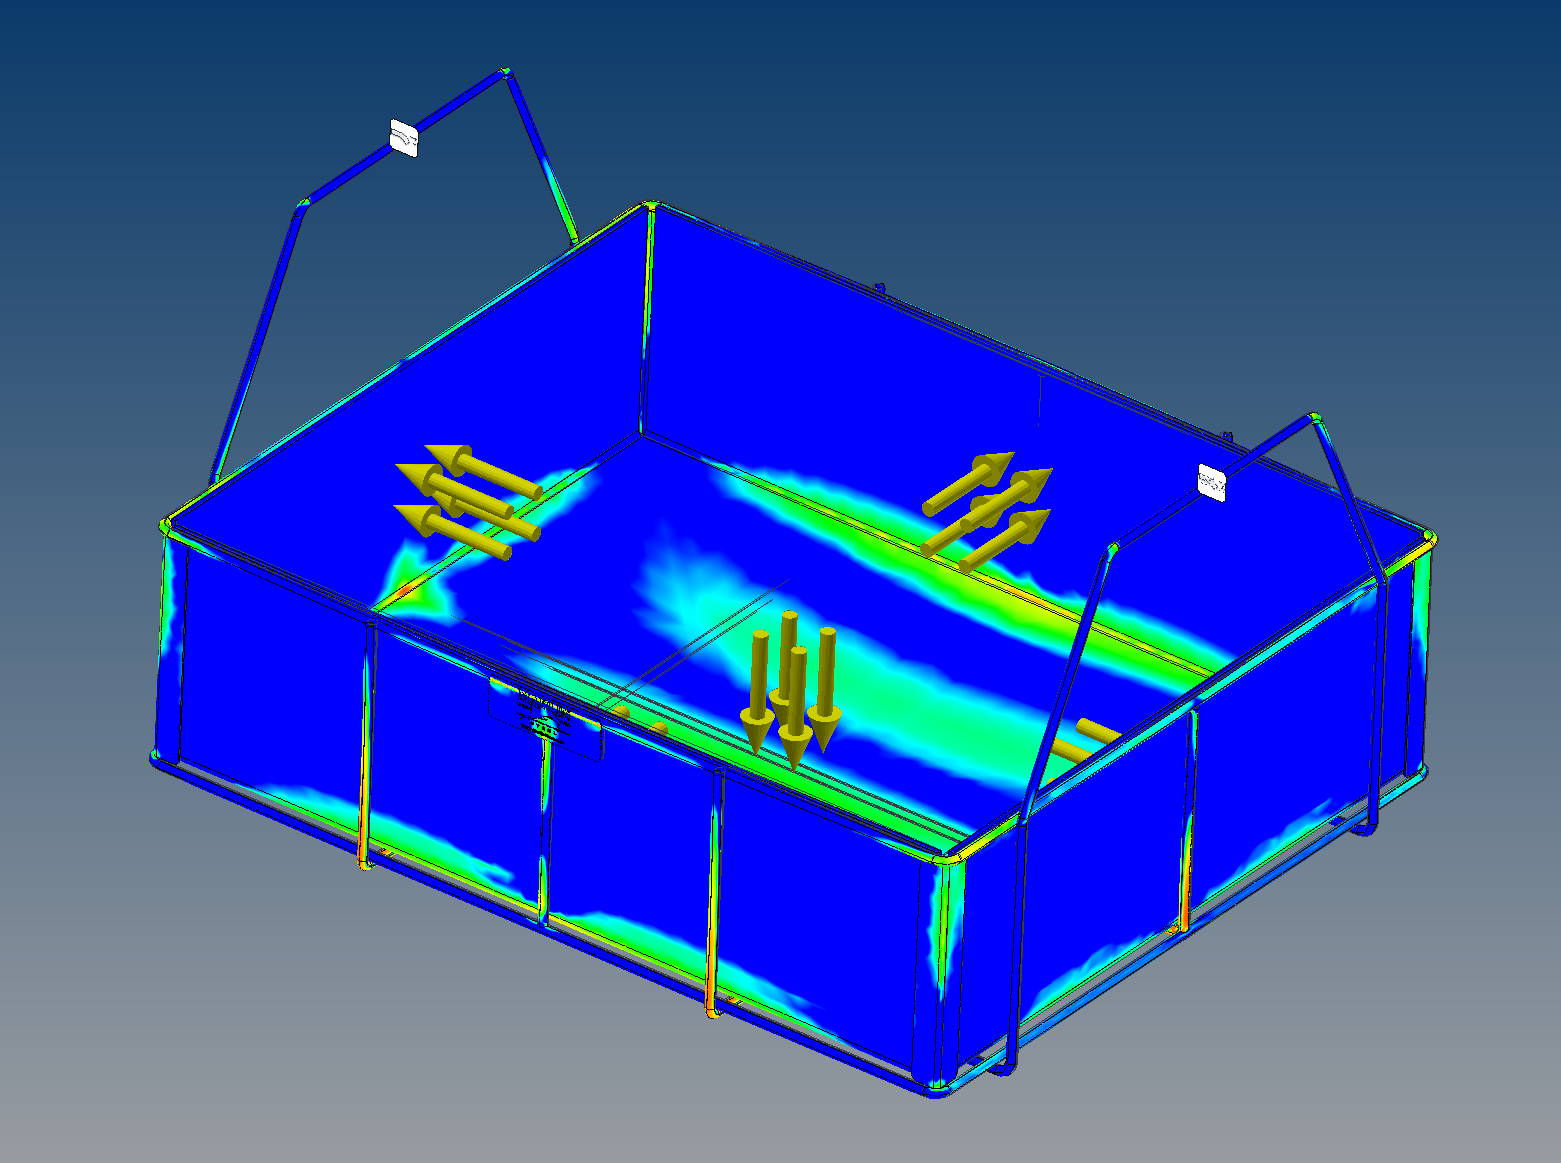 3 Reasons Stress Analysis Tests Result in Better Wire Forms